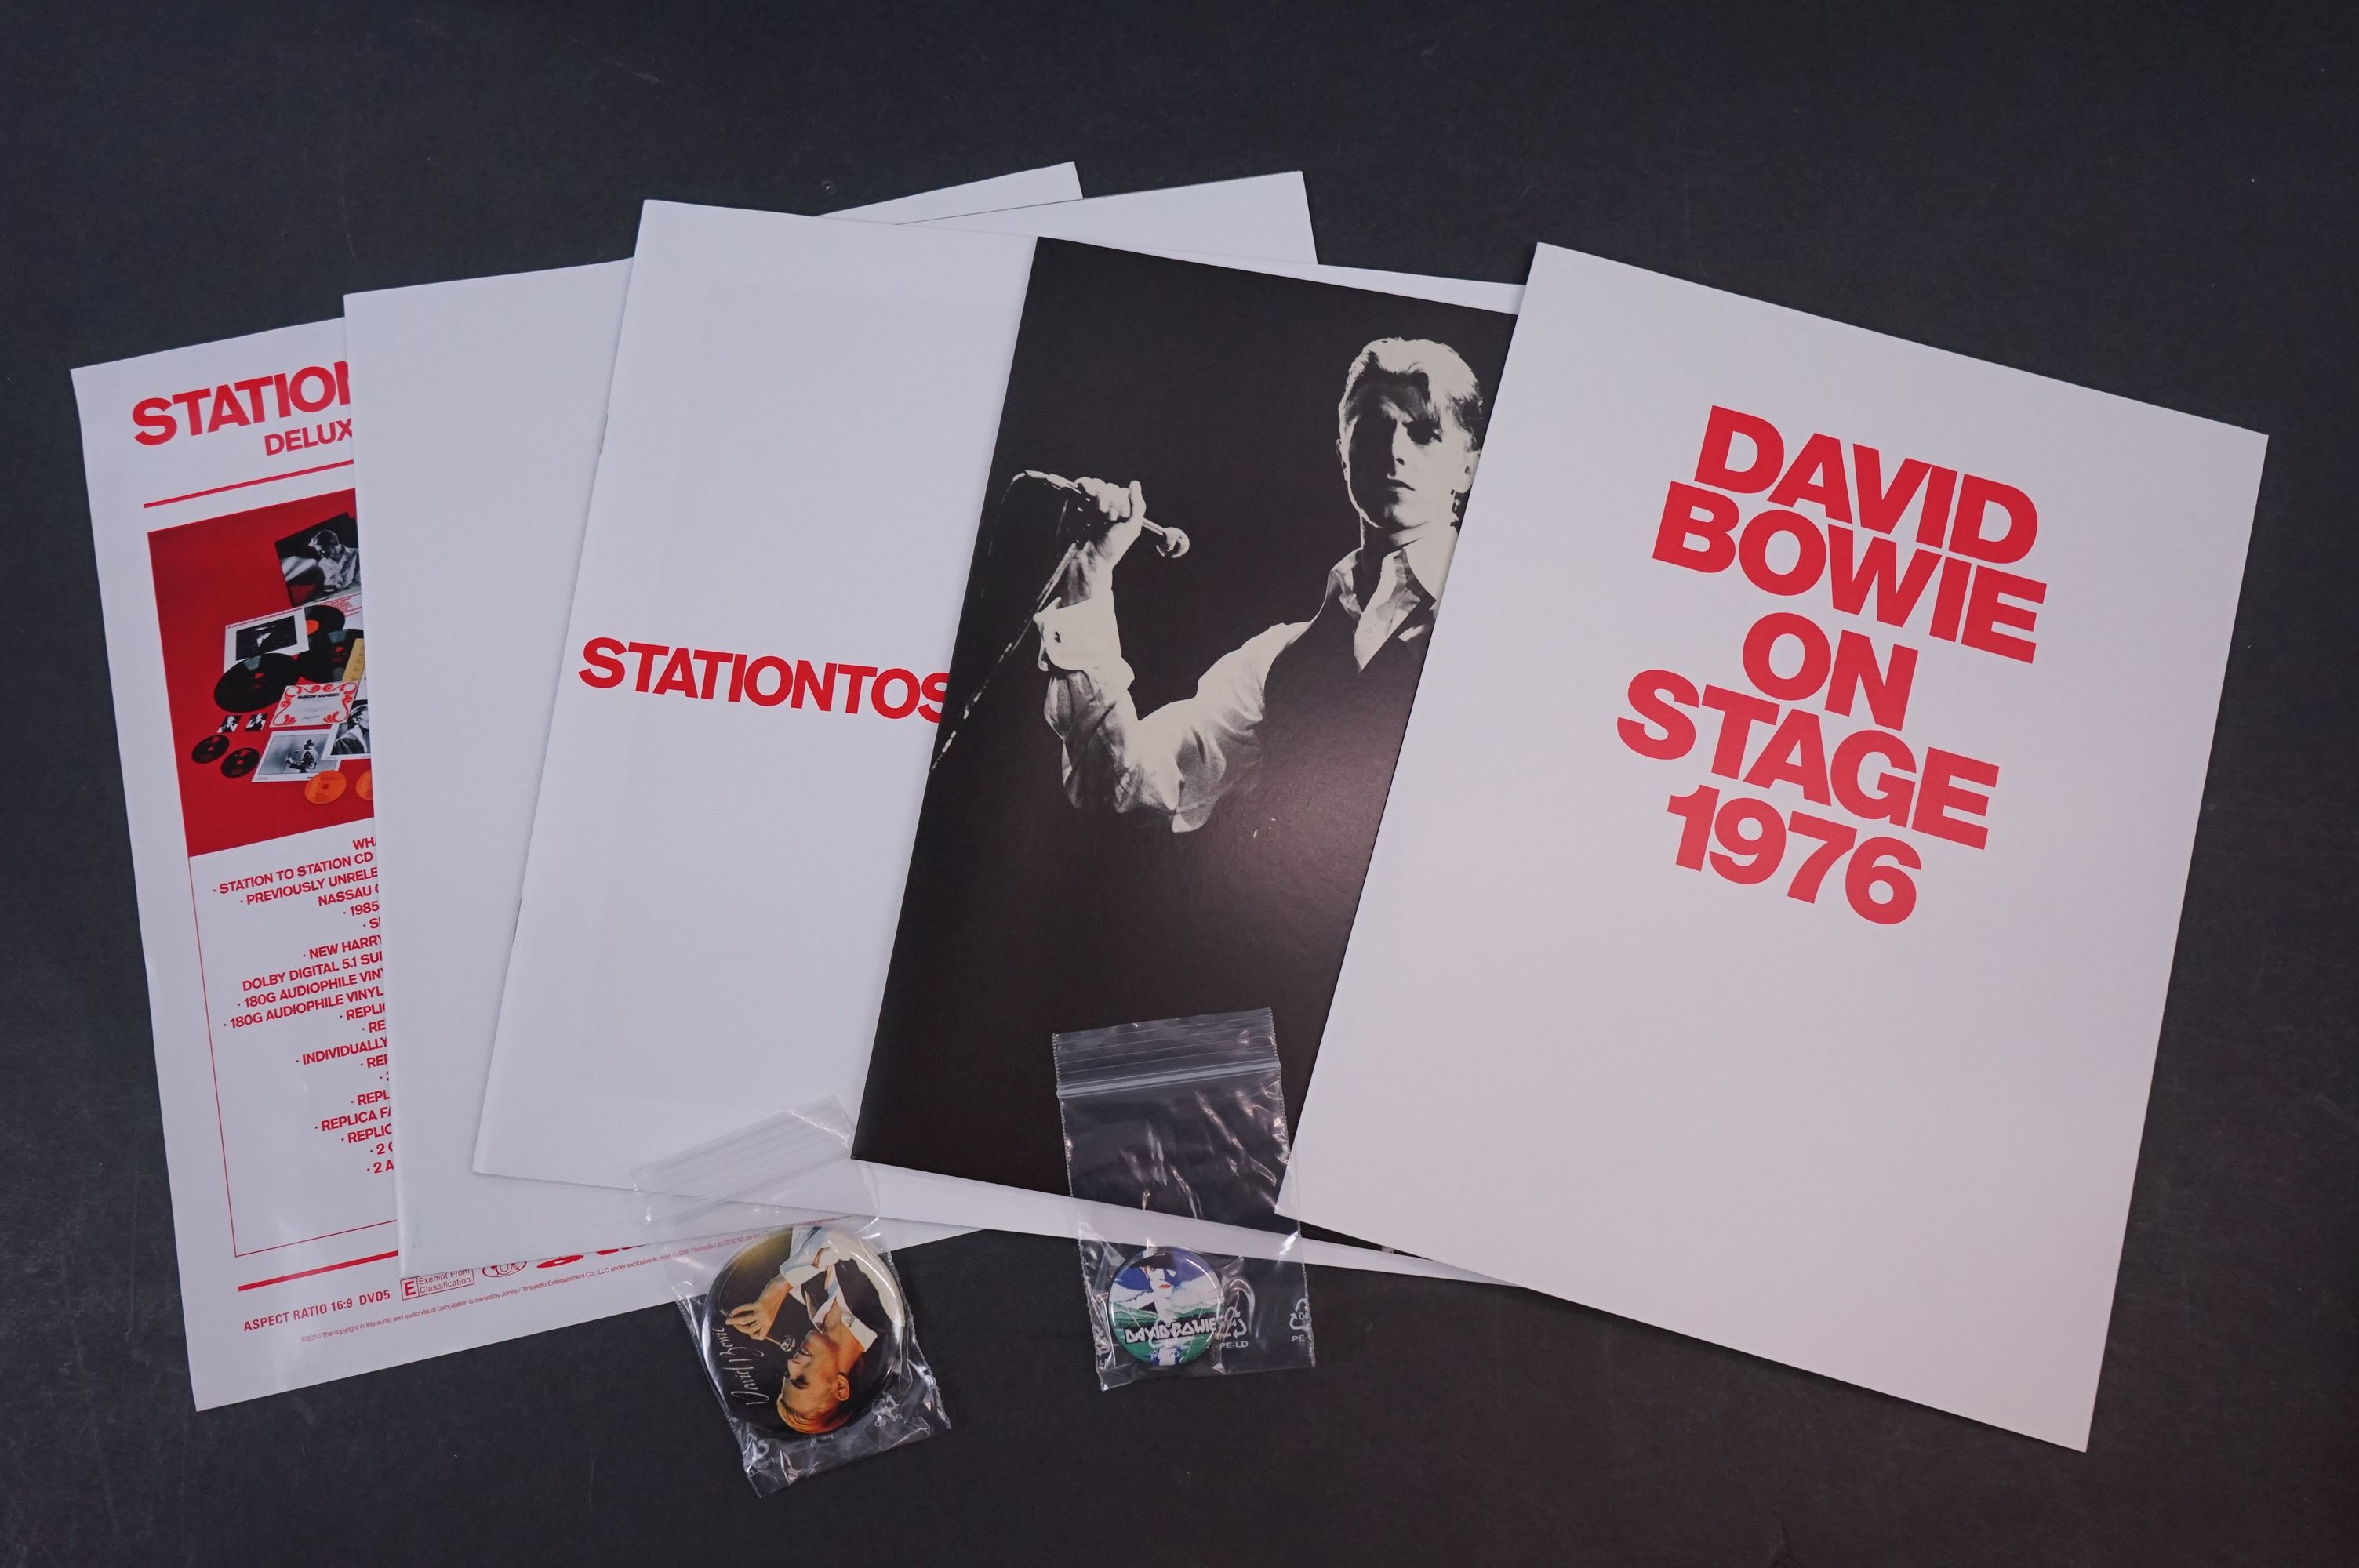 Vinyl / CD / DVD - David Bowie Station To Station Deluxe Box Set, vg - Image 10 of 15